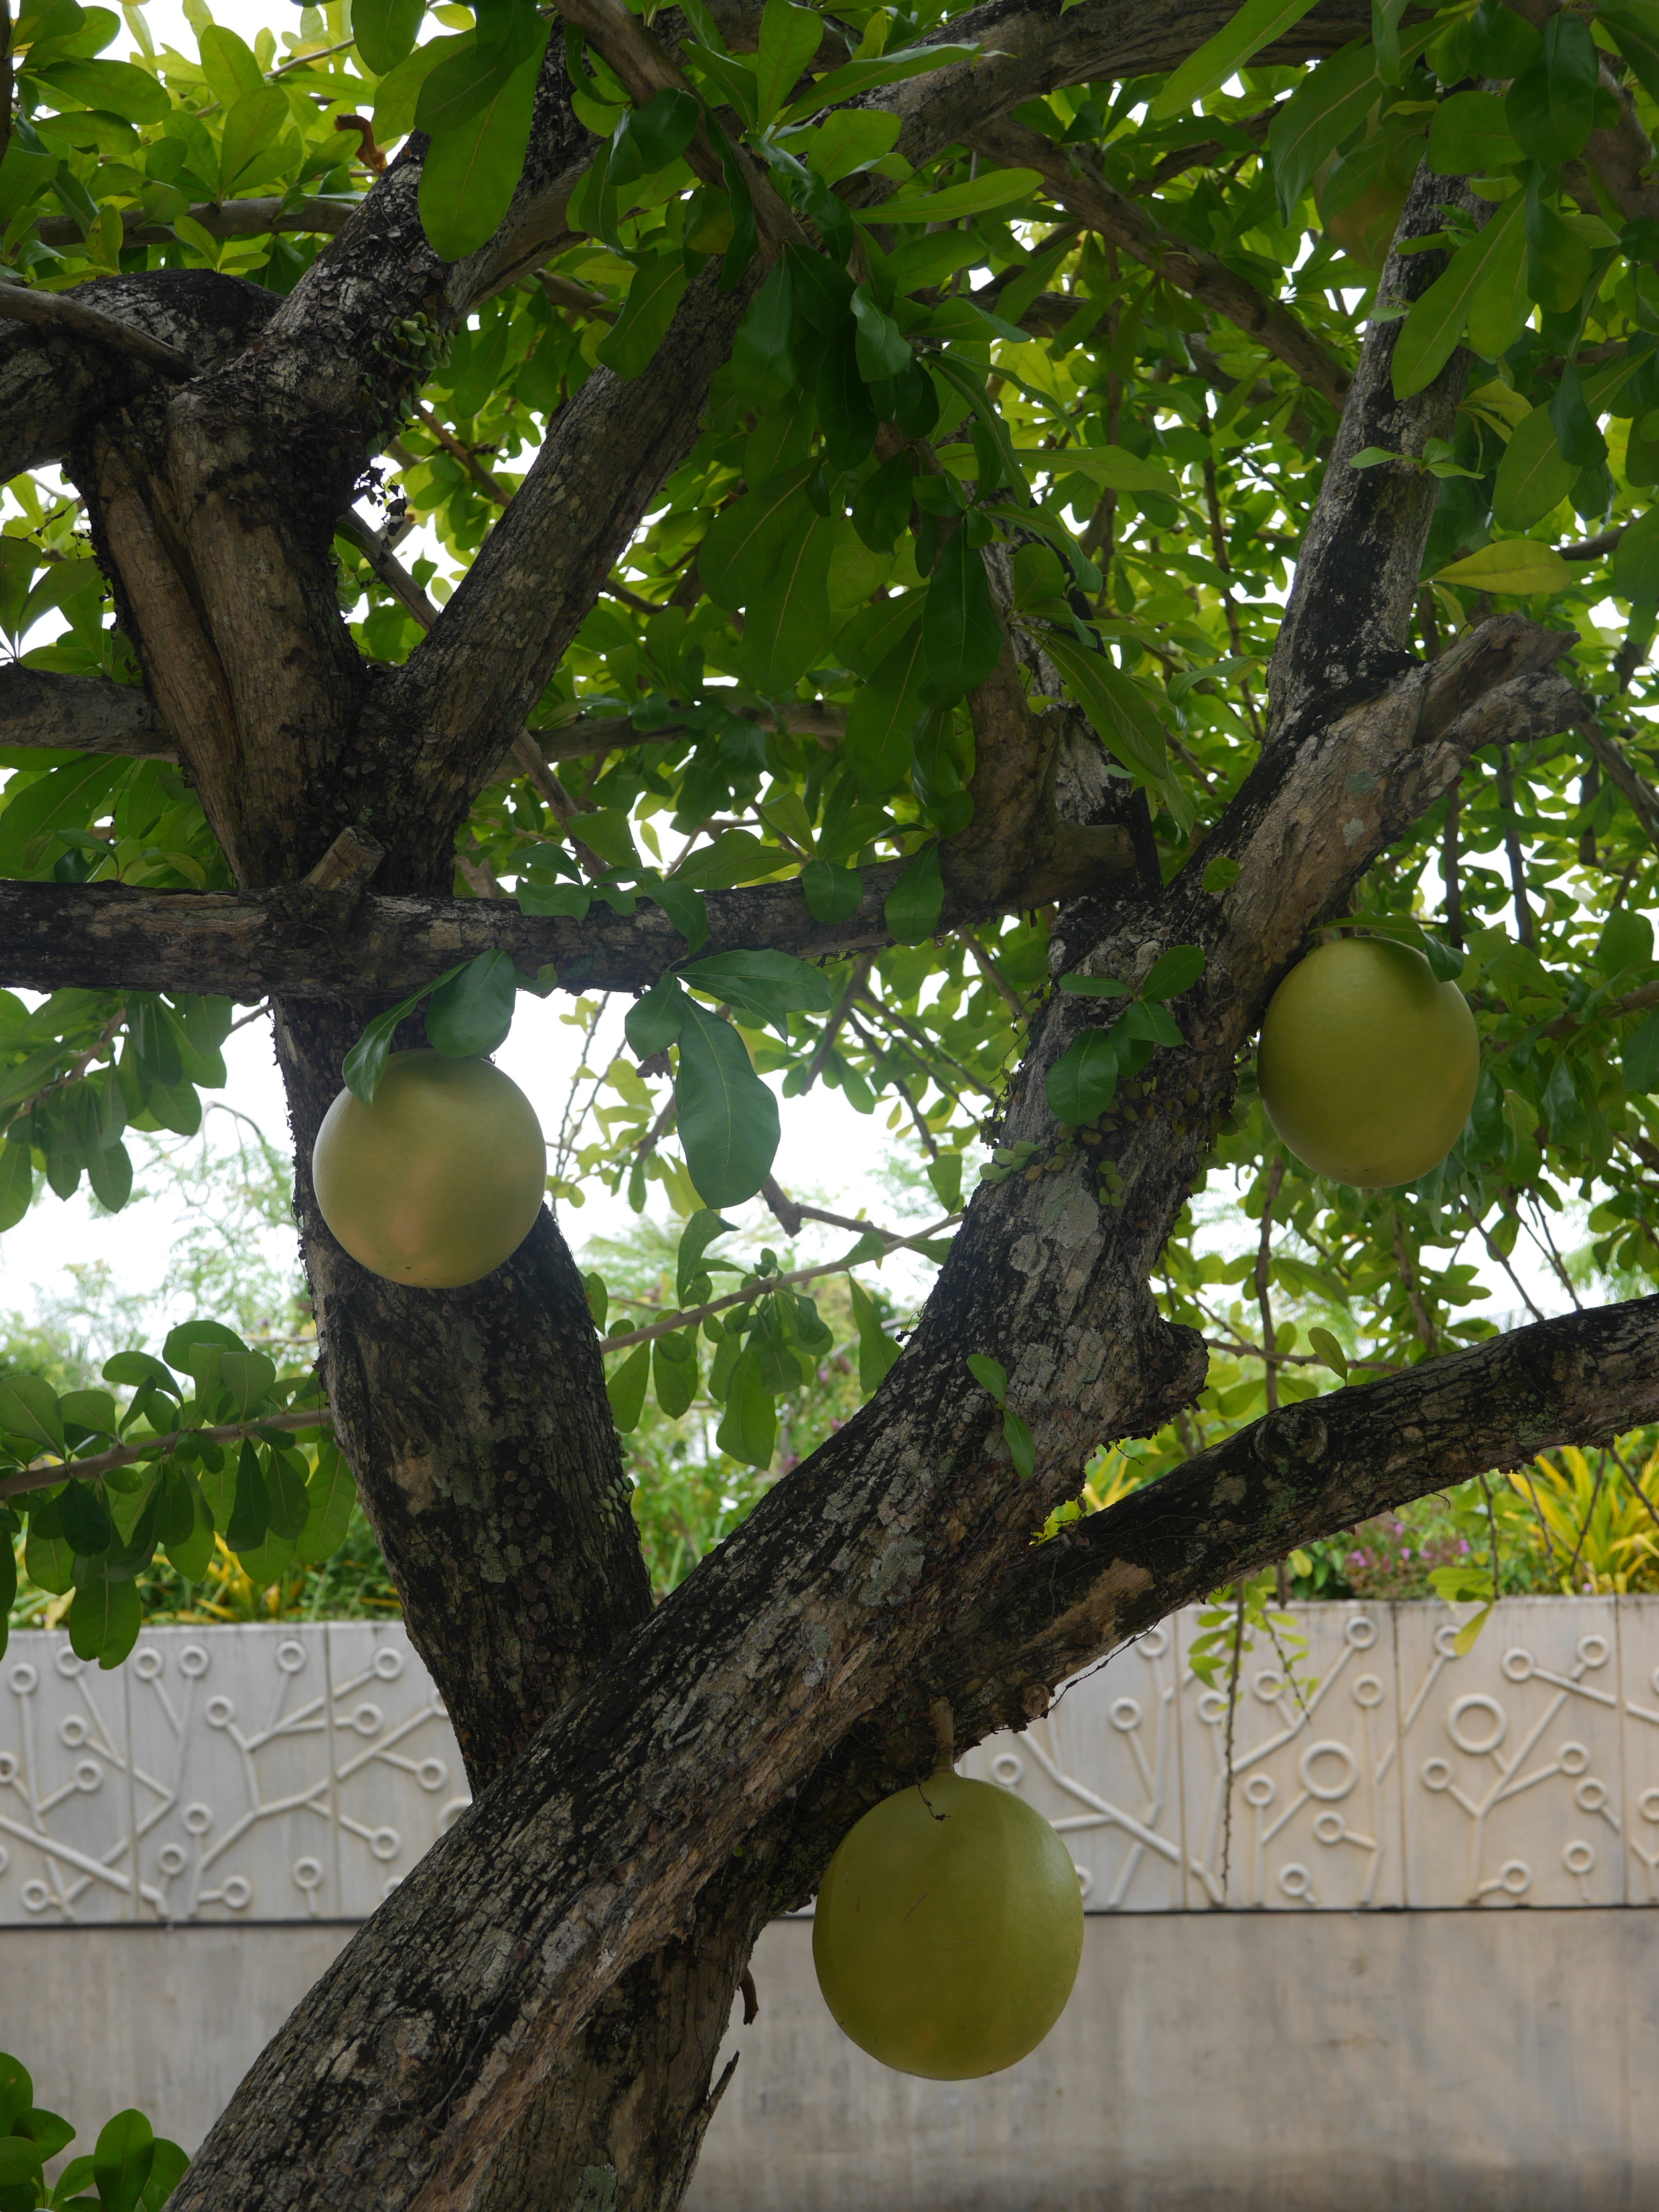 A calabash tree (not to be confused with the vine, which produces the fruit one might be familiar with). The way the fruit grows off the trunk and branches reminded me of cacao, but it's not very closely related at all.